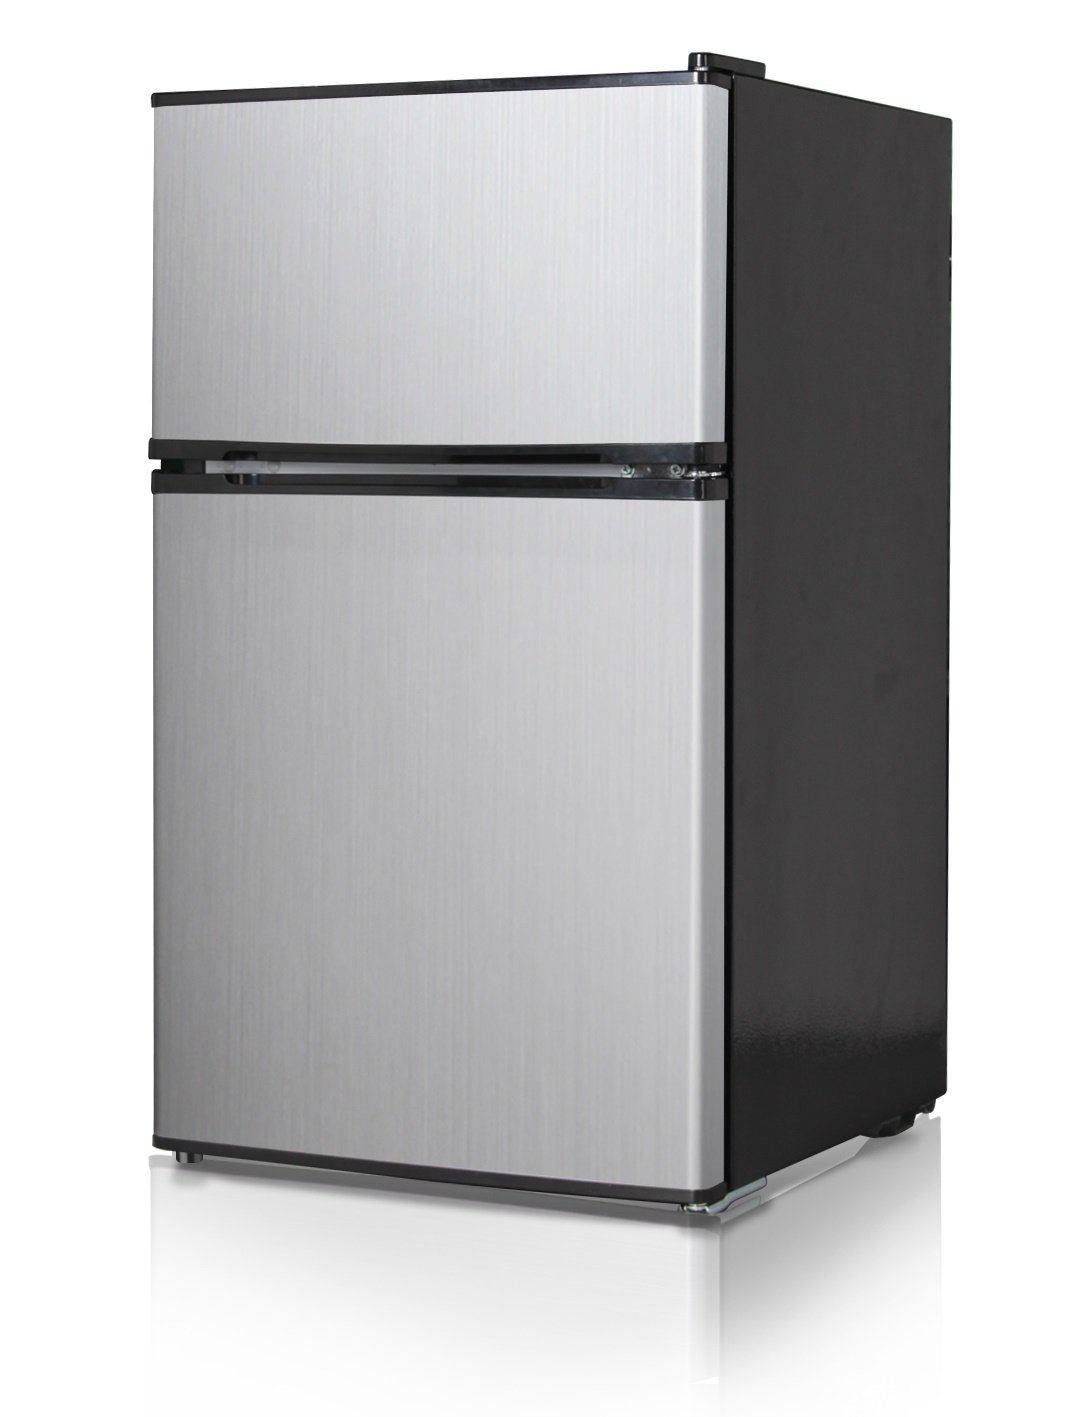 Amazoncom Midea WHD125FSS1 Compact Refrigerator Black with